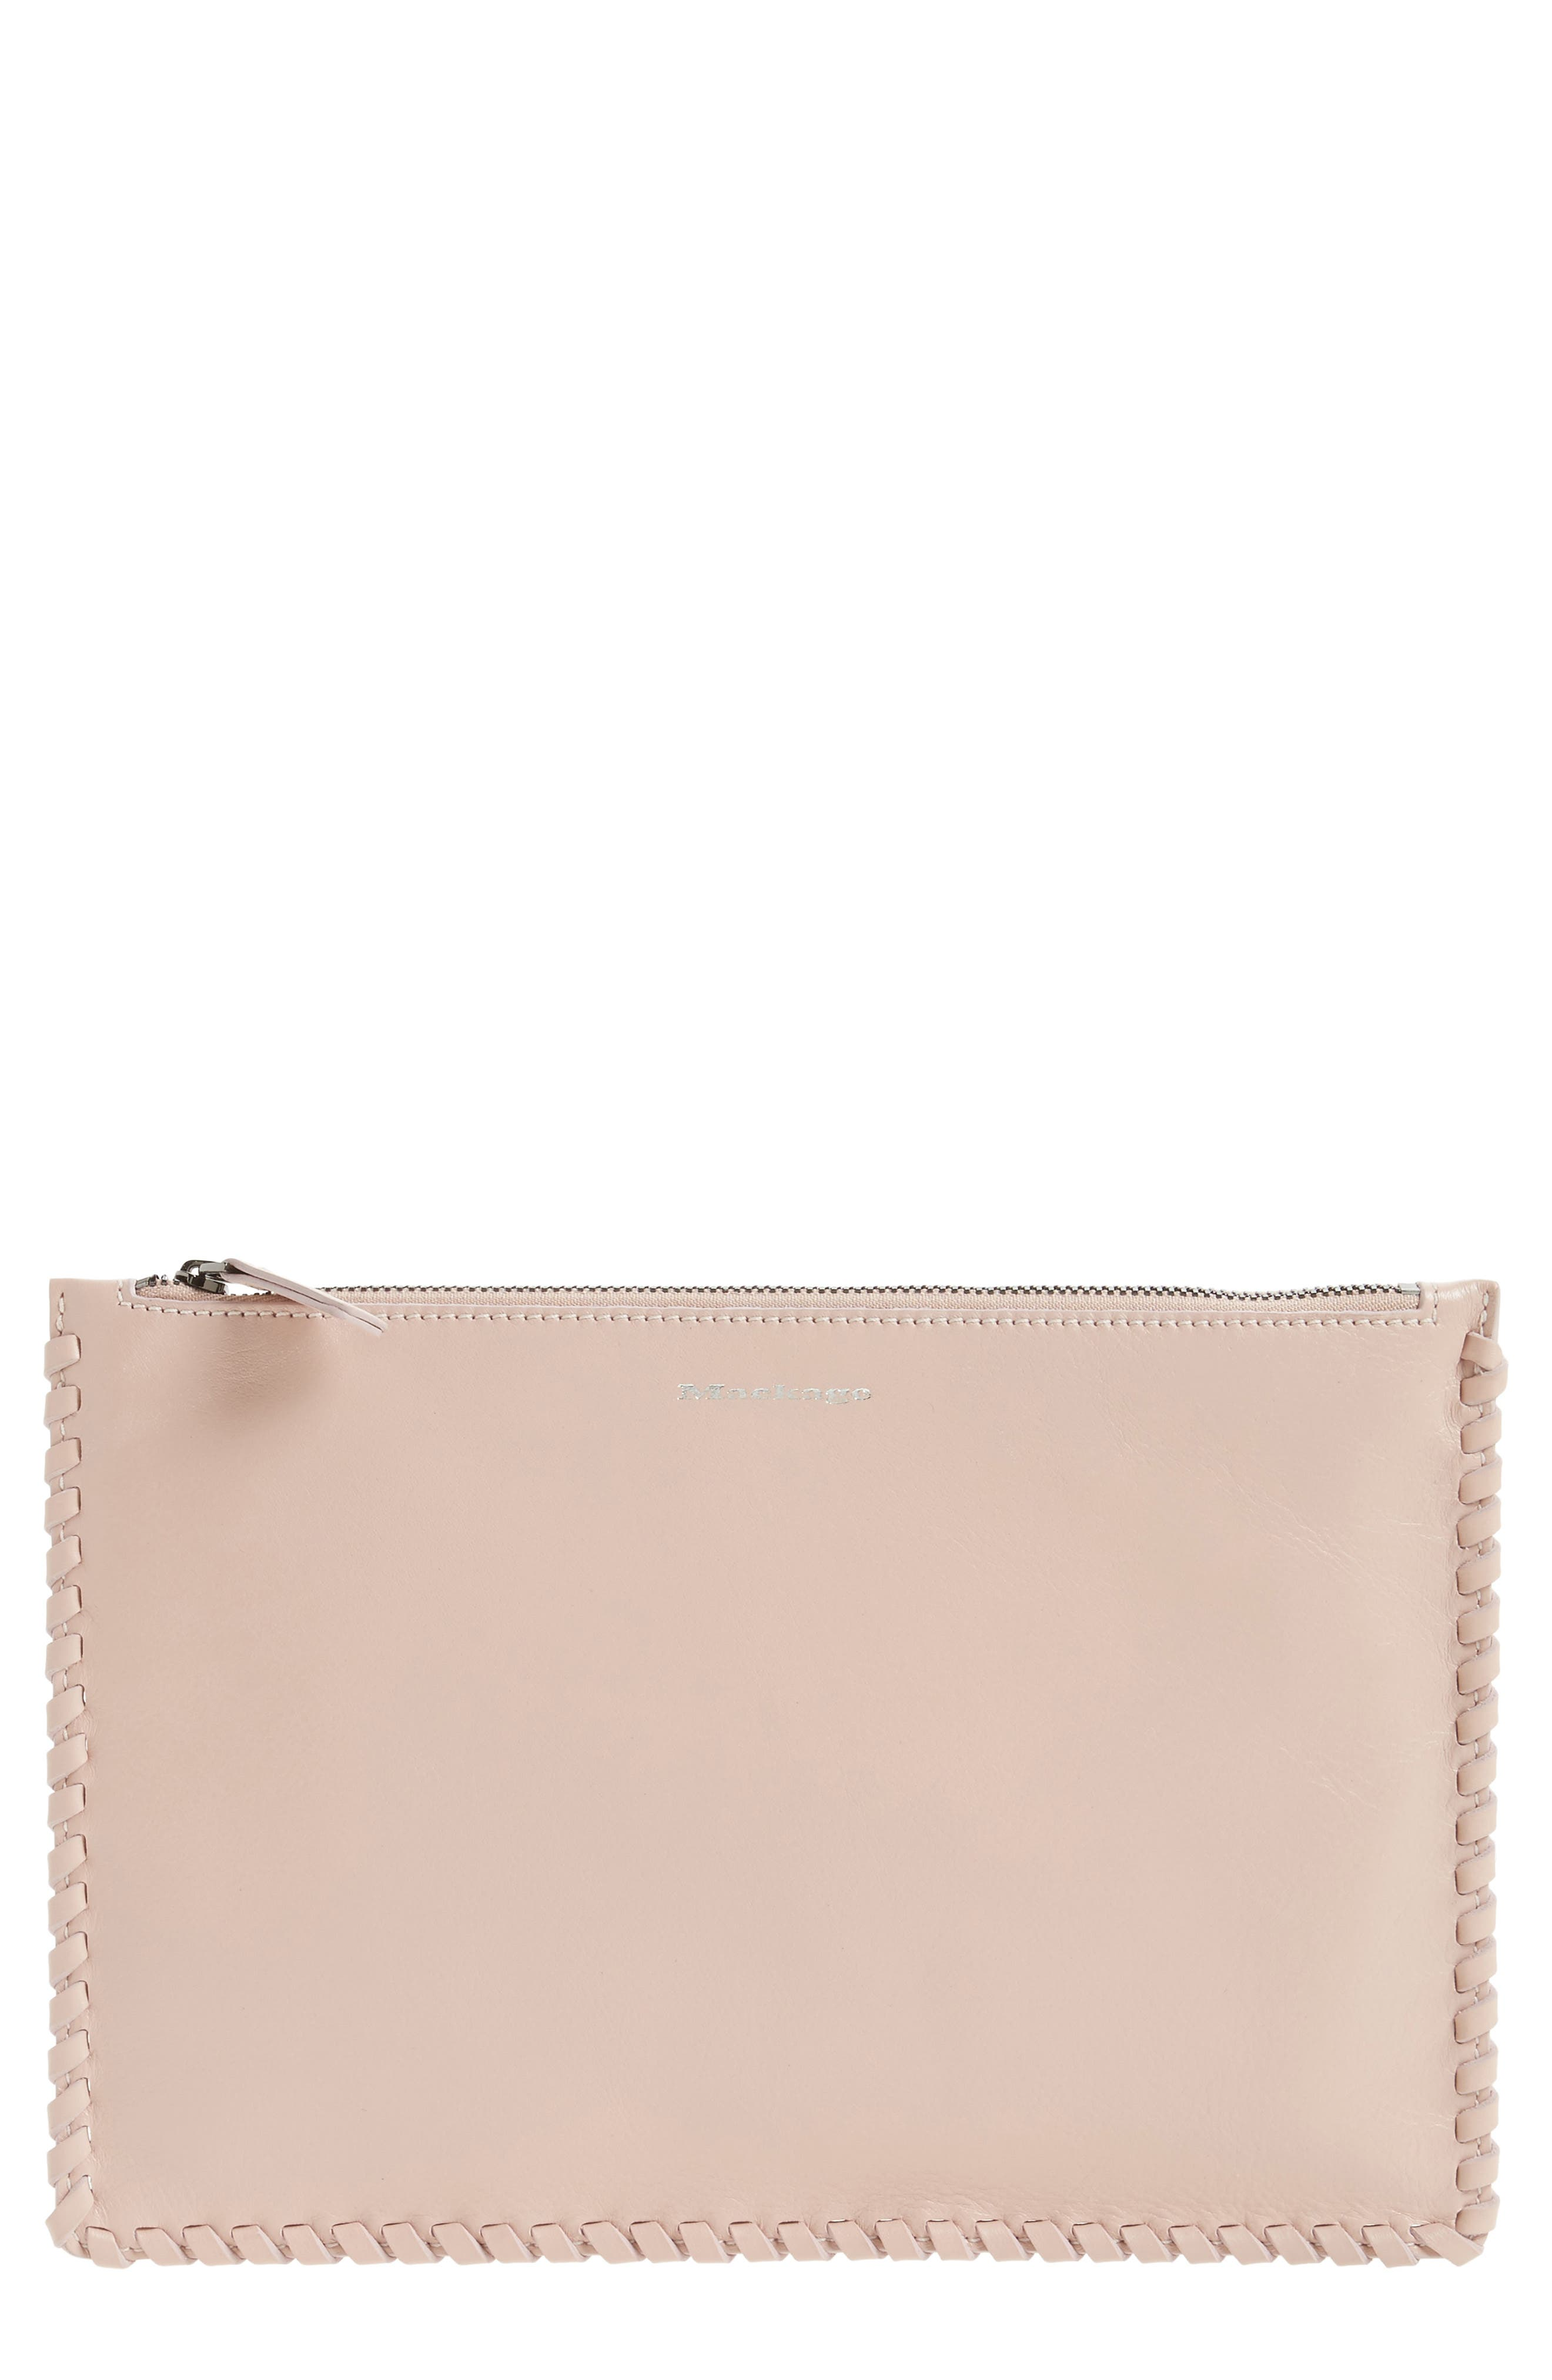 Mackage Whipstitch Leather Zip Pouch